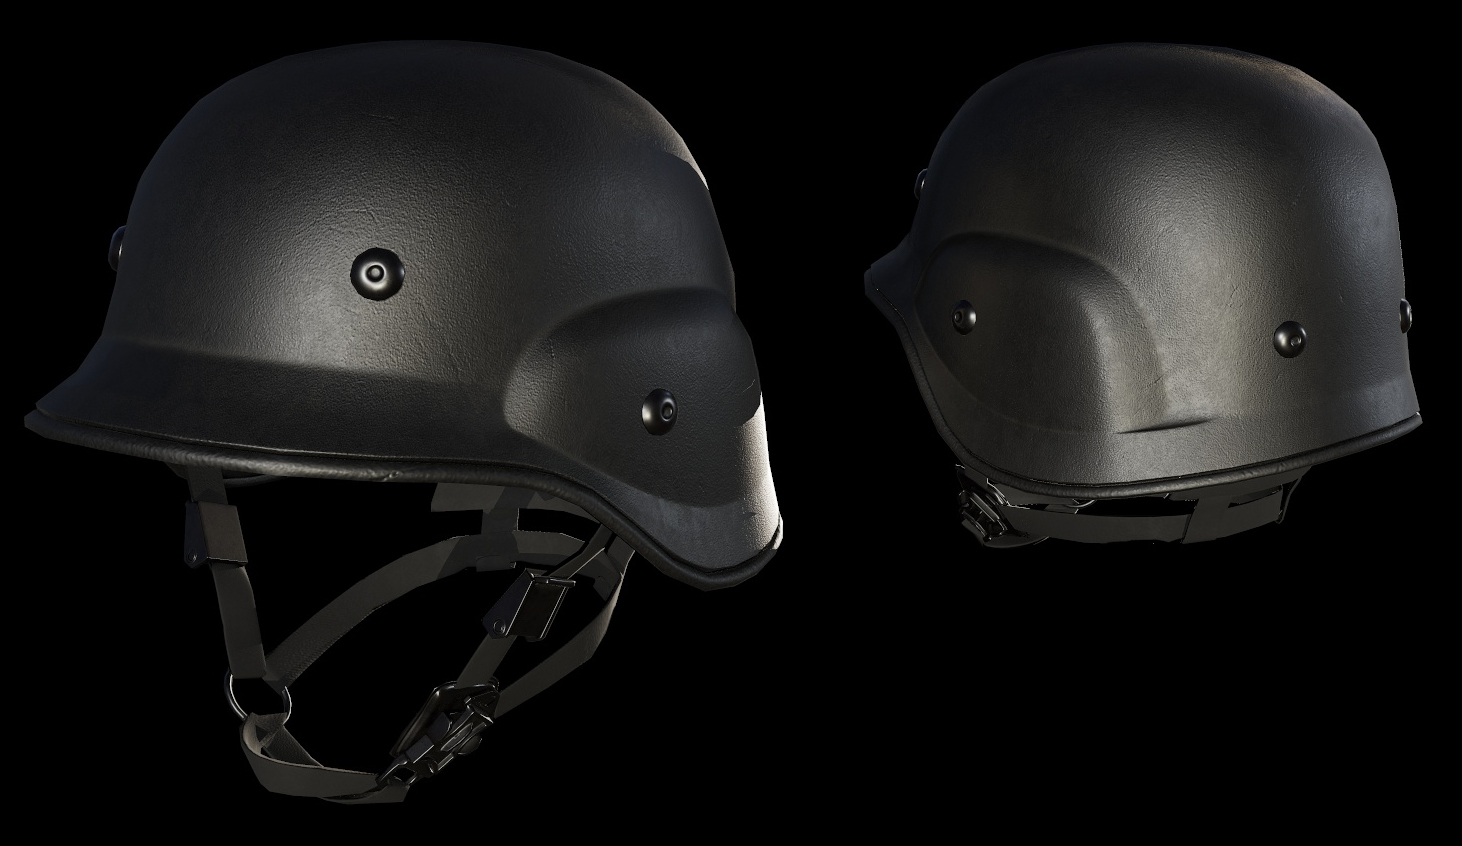 Copy of New model for the VOLK  helmet.